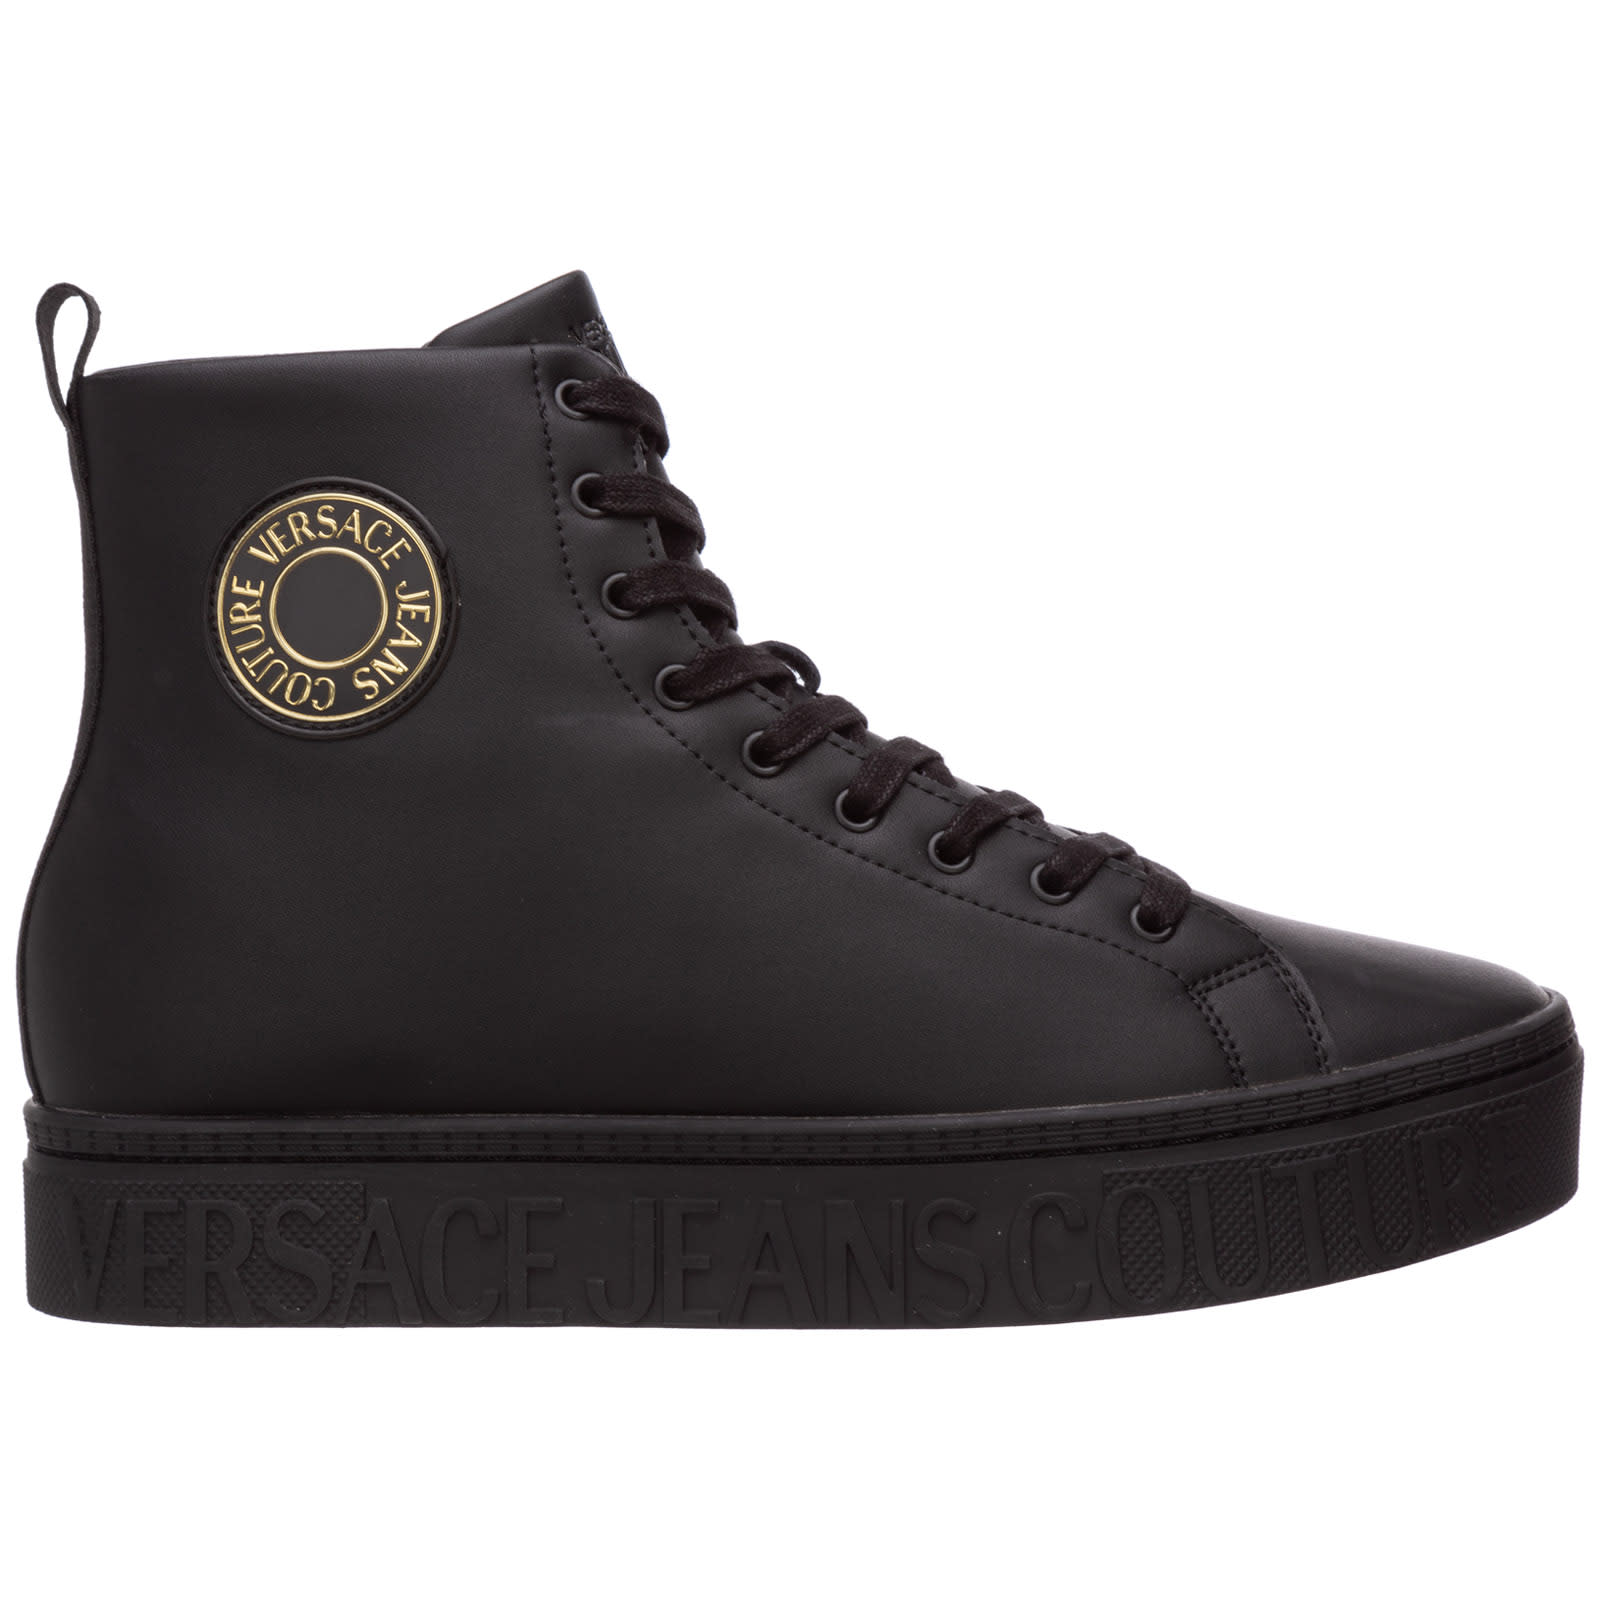 Versace Jeans Couture Puro Lino High-top Sneakers